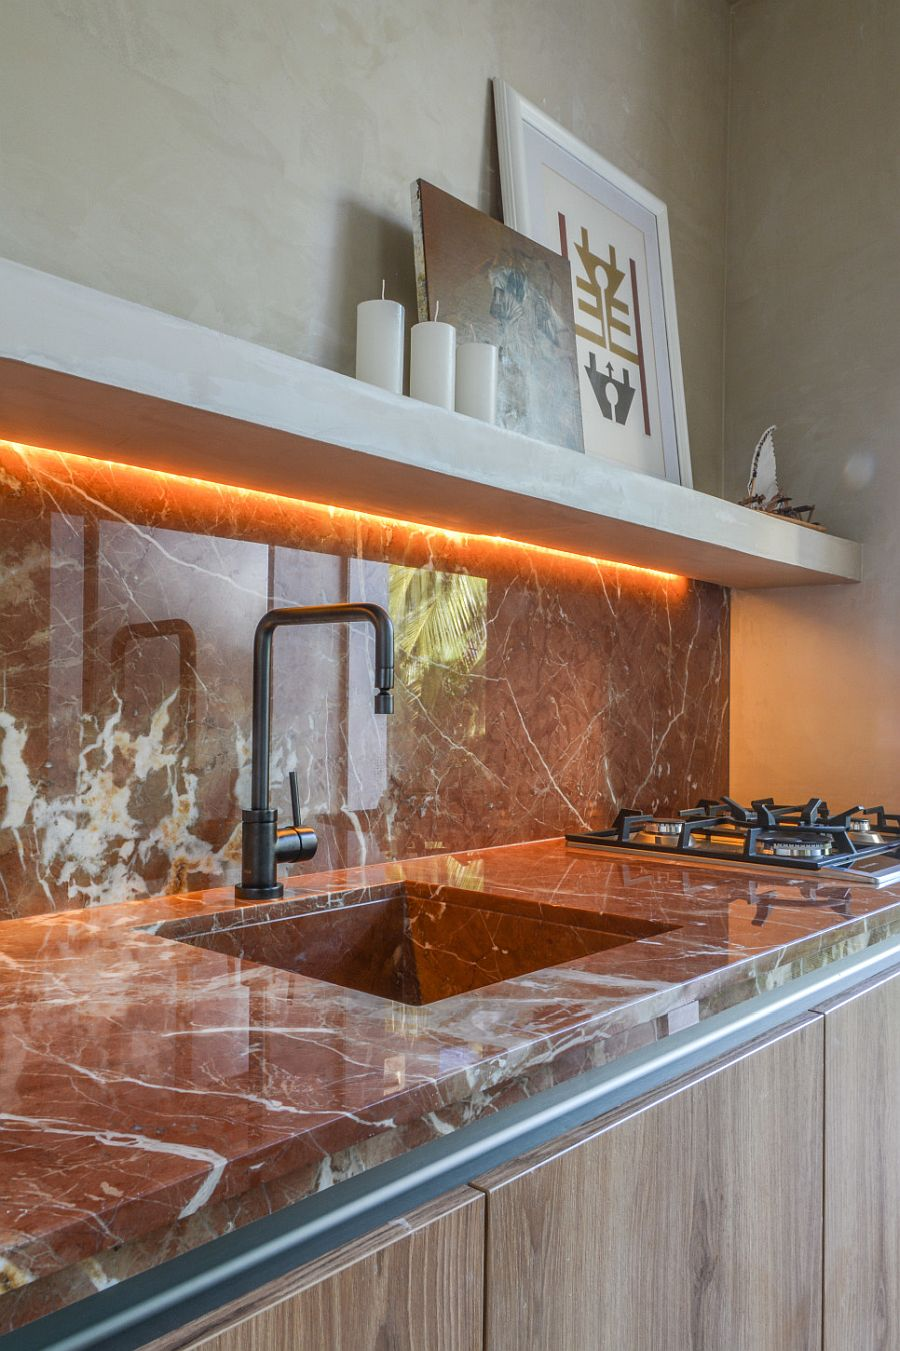 LED strip lights under the counter add glow to the backsplash in stone